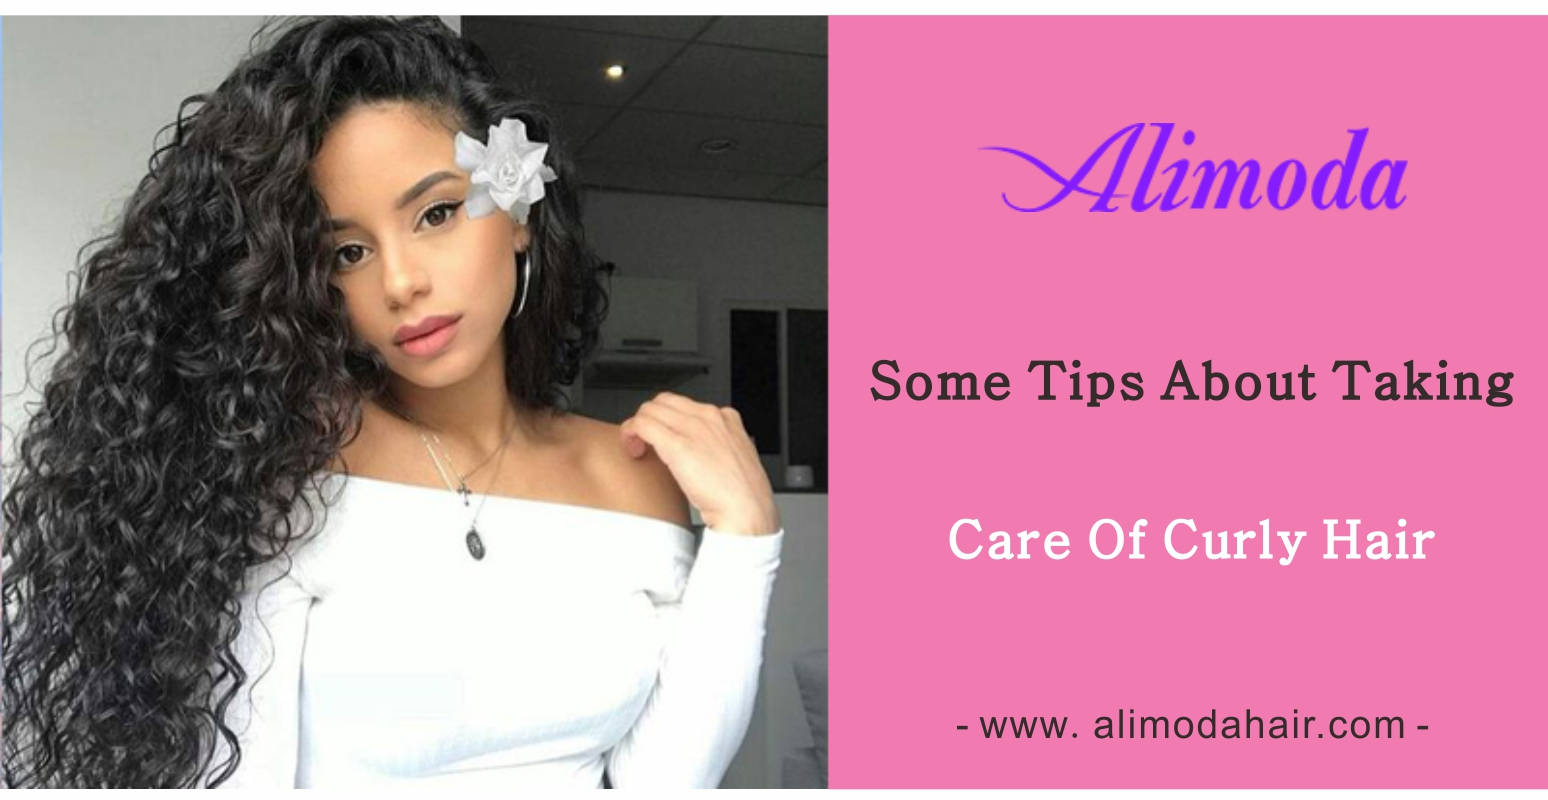 Some tips about taking care of curly hair